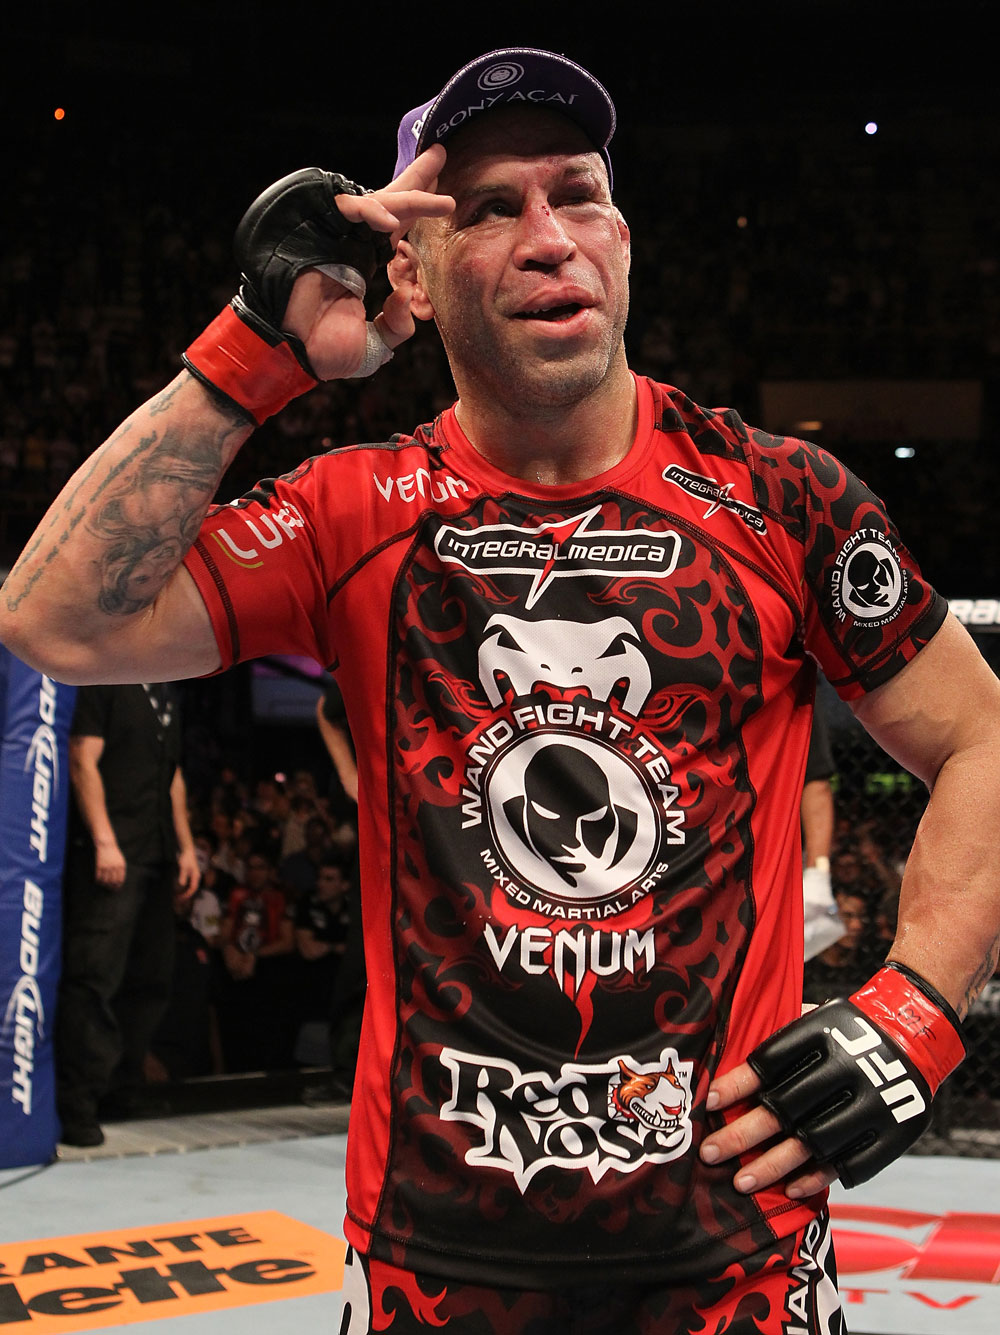 BELO HORIZONTE, BRAZIL - JUNE 23:   Wanderlei Silva stands in the Octagon after his UFC 147 catchweight bout against Rich Franklin at Estadio Jornalista Felipe Drummond on June 23, 2012 in Belo Horizonte, Brazil.  (Photo by Josh Hedges/Zuffa LLC/Zuffa LLC via Getty Images)